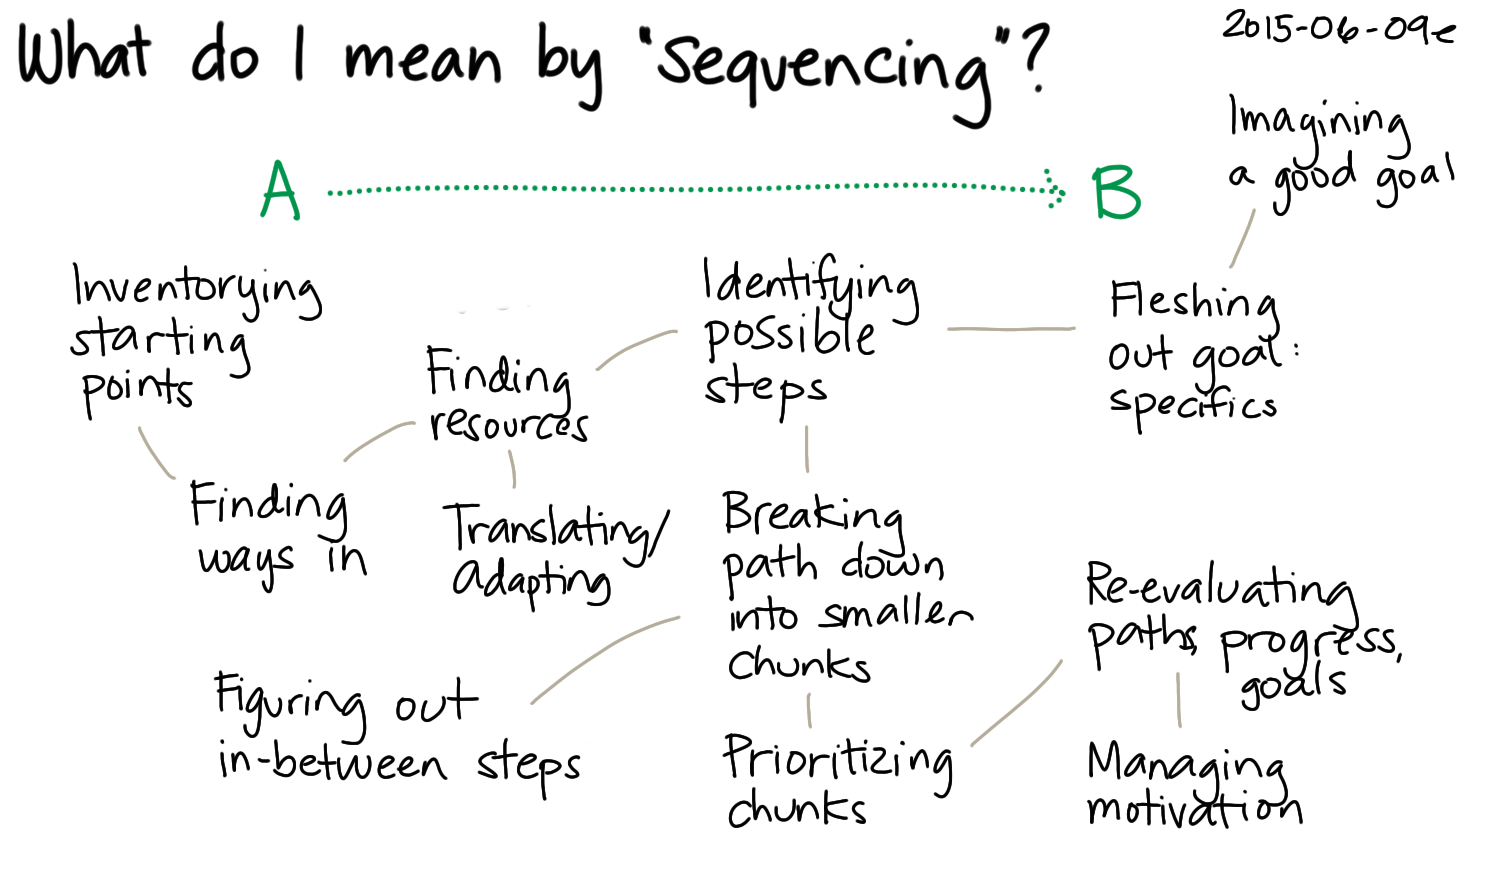 2015-06-09e What do I mean by sequencing -- index card #learning #problem-solving #sequencing.png